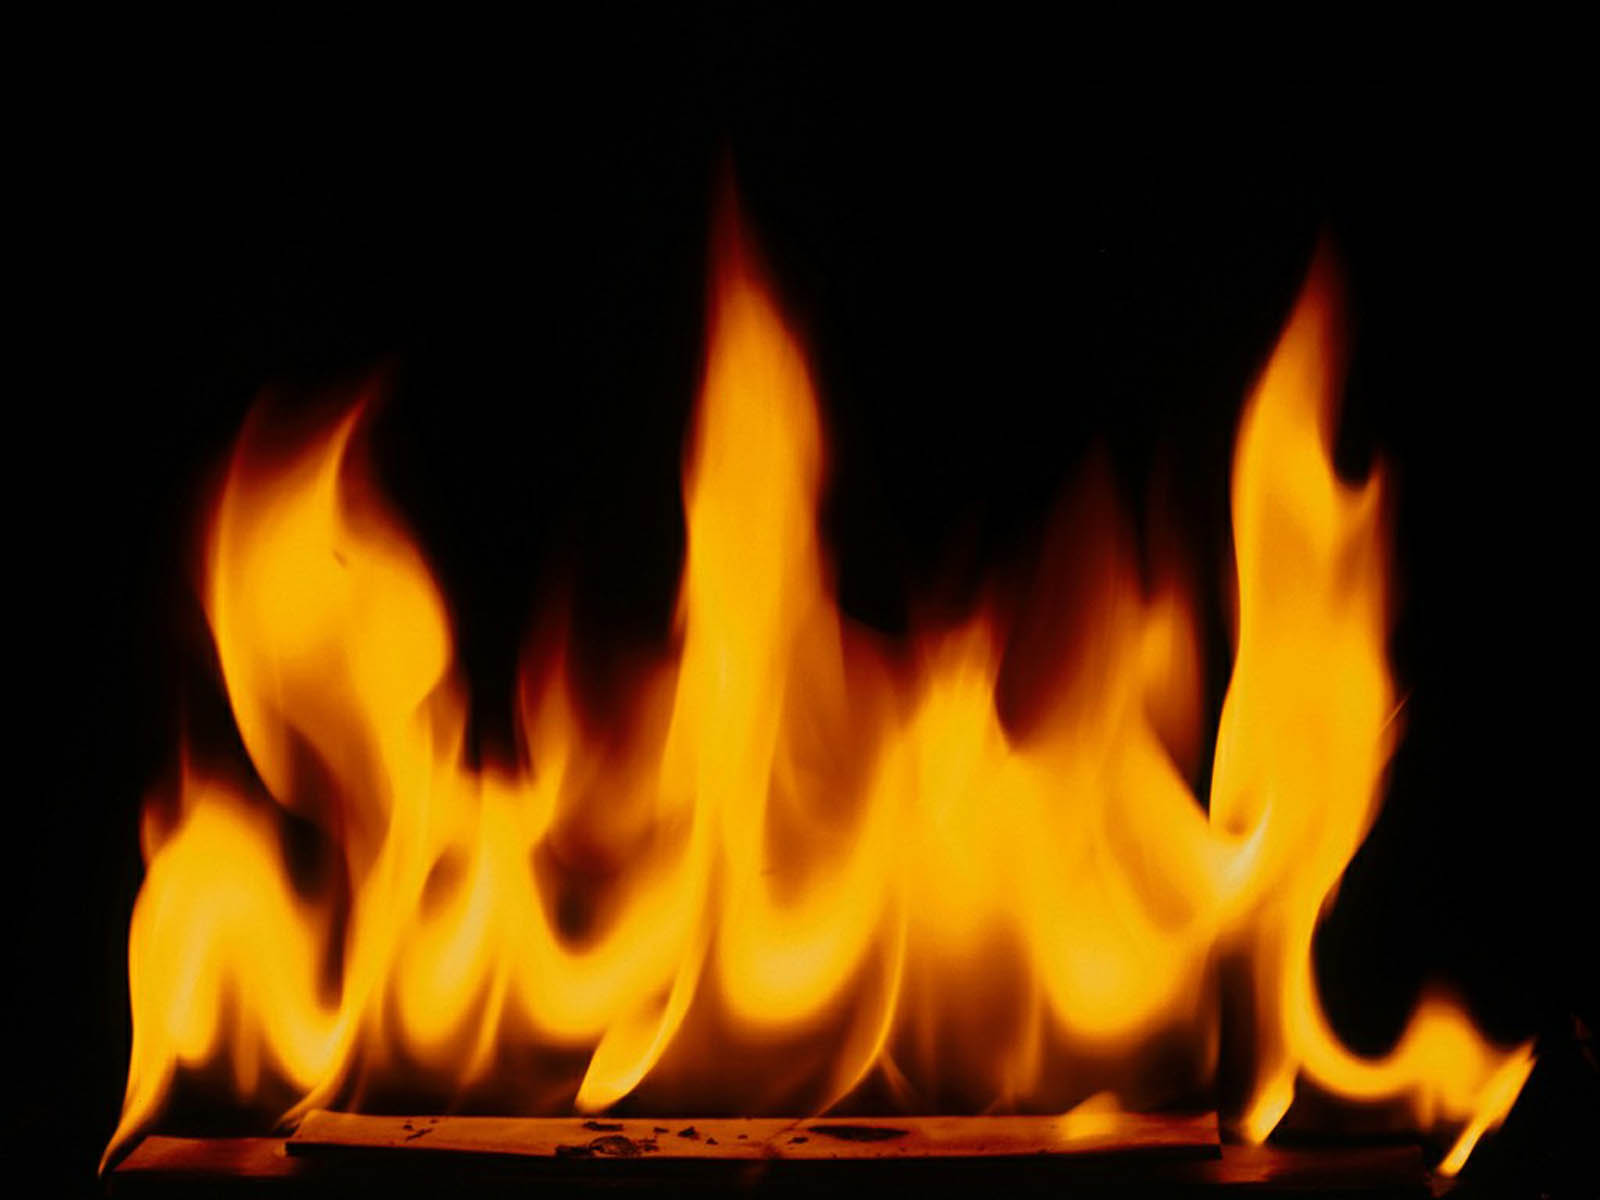 flaming fireplace wallpaper - photo #11